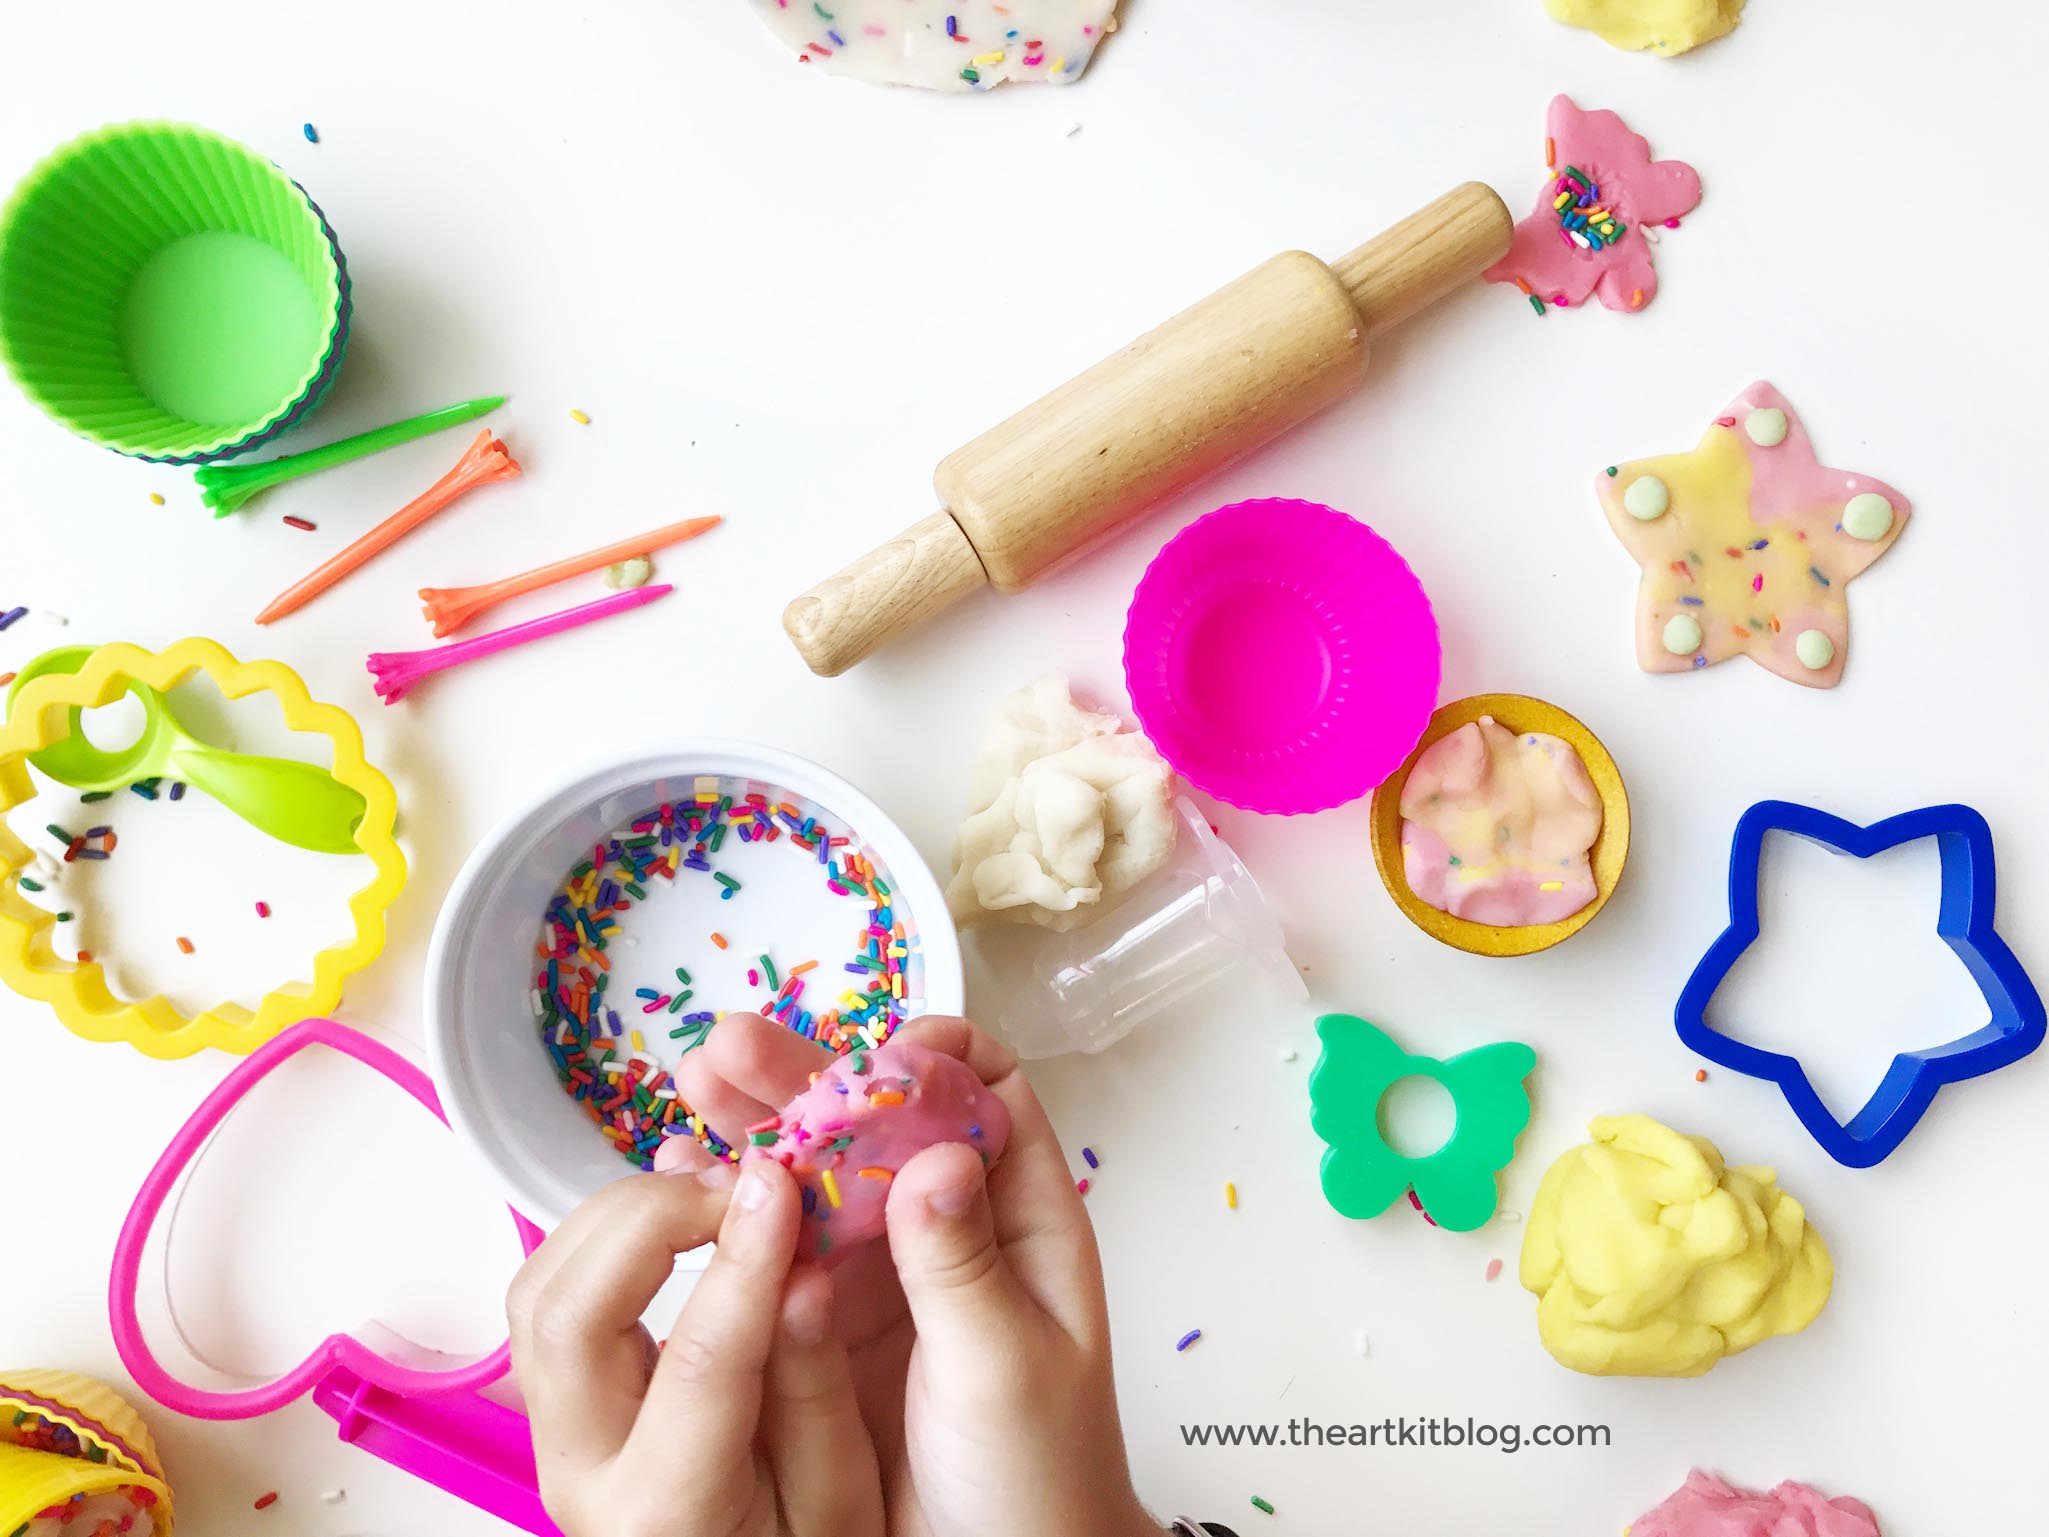 Birthday Party The Art Kit Blog Homemade Playdough With Sprinkles There Is Just Something About That Makes A Person Smile